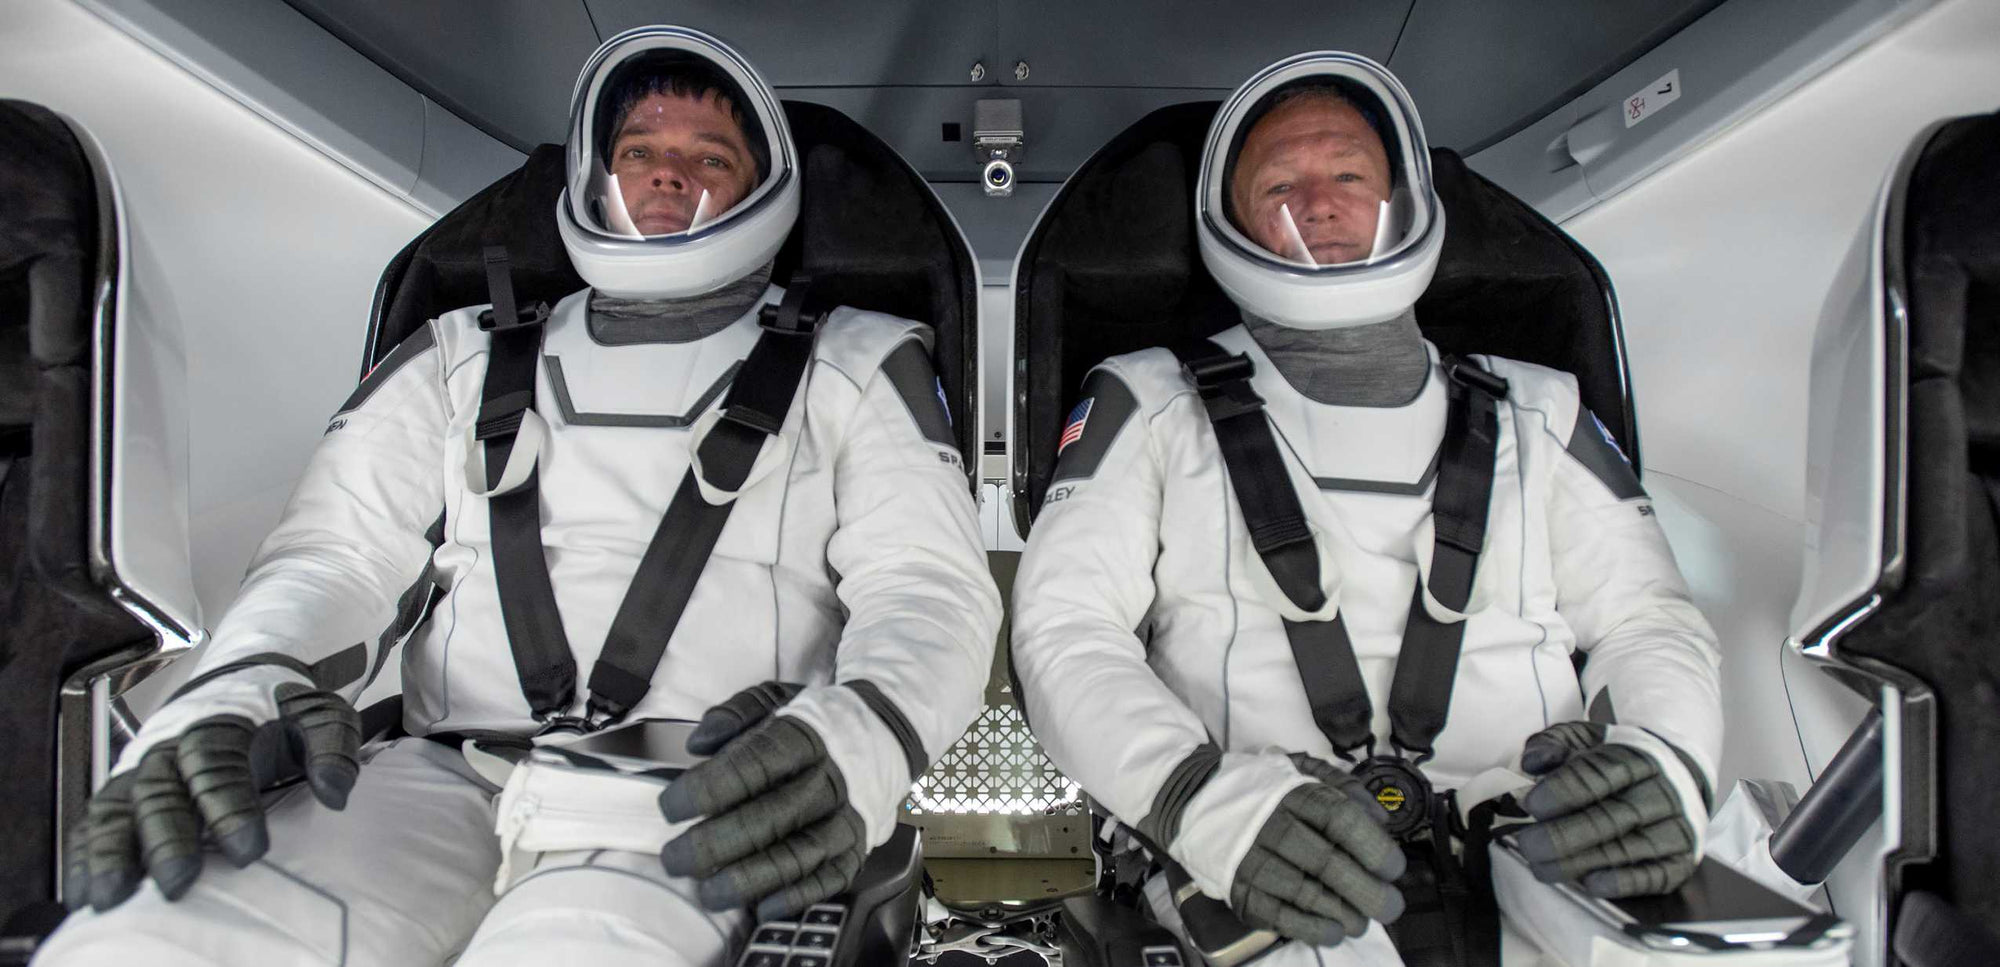 SpaceX is preparing to launch NASA astronauts for the first time -Take a look inside Crew Dragon!